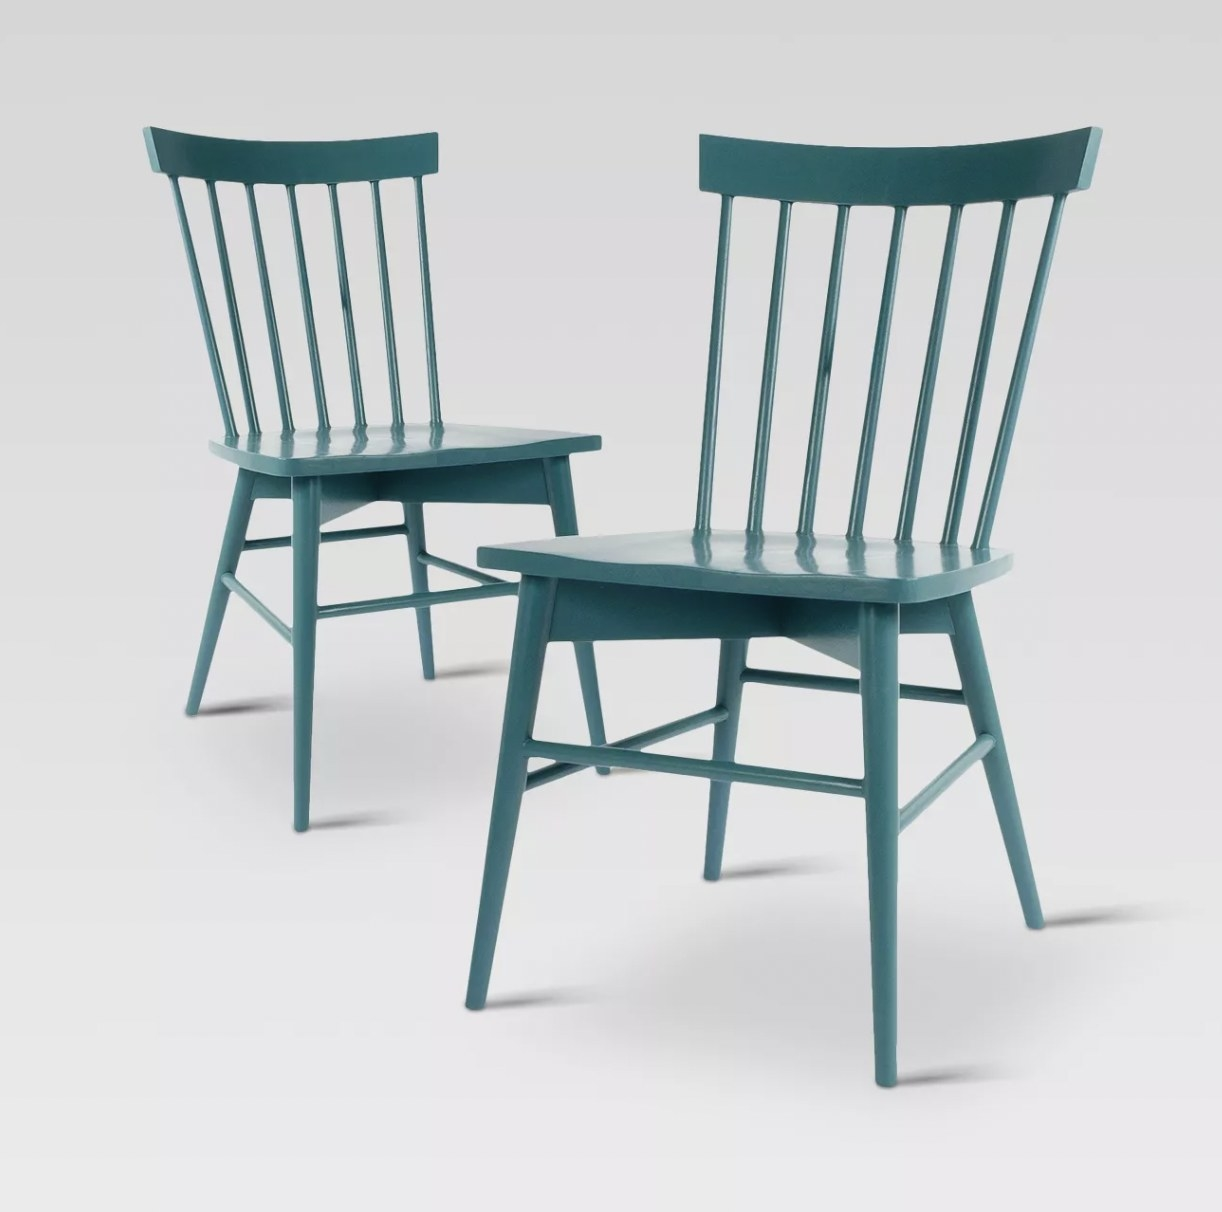 a set of two wooden teal dining chairs